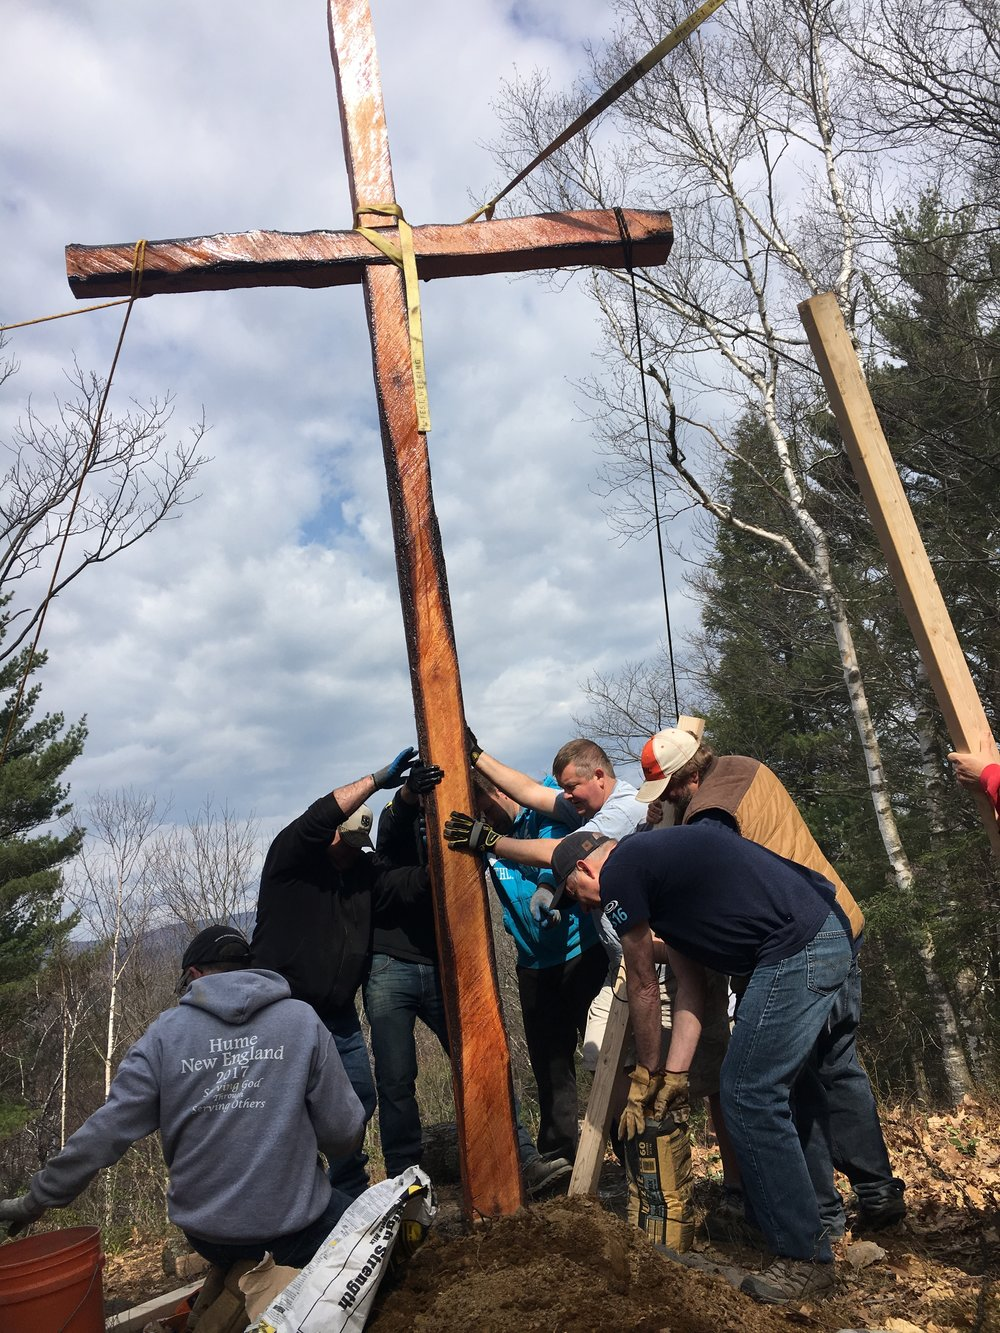 Staff and volunteers working together to place the cross.